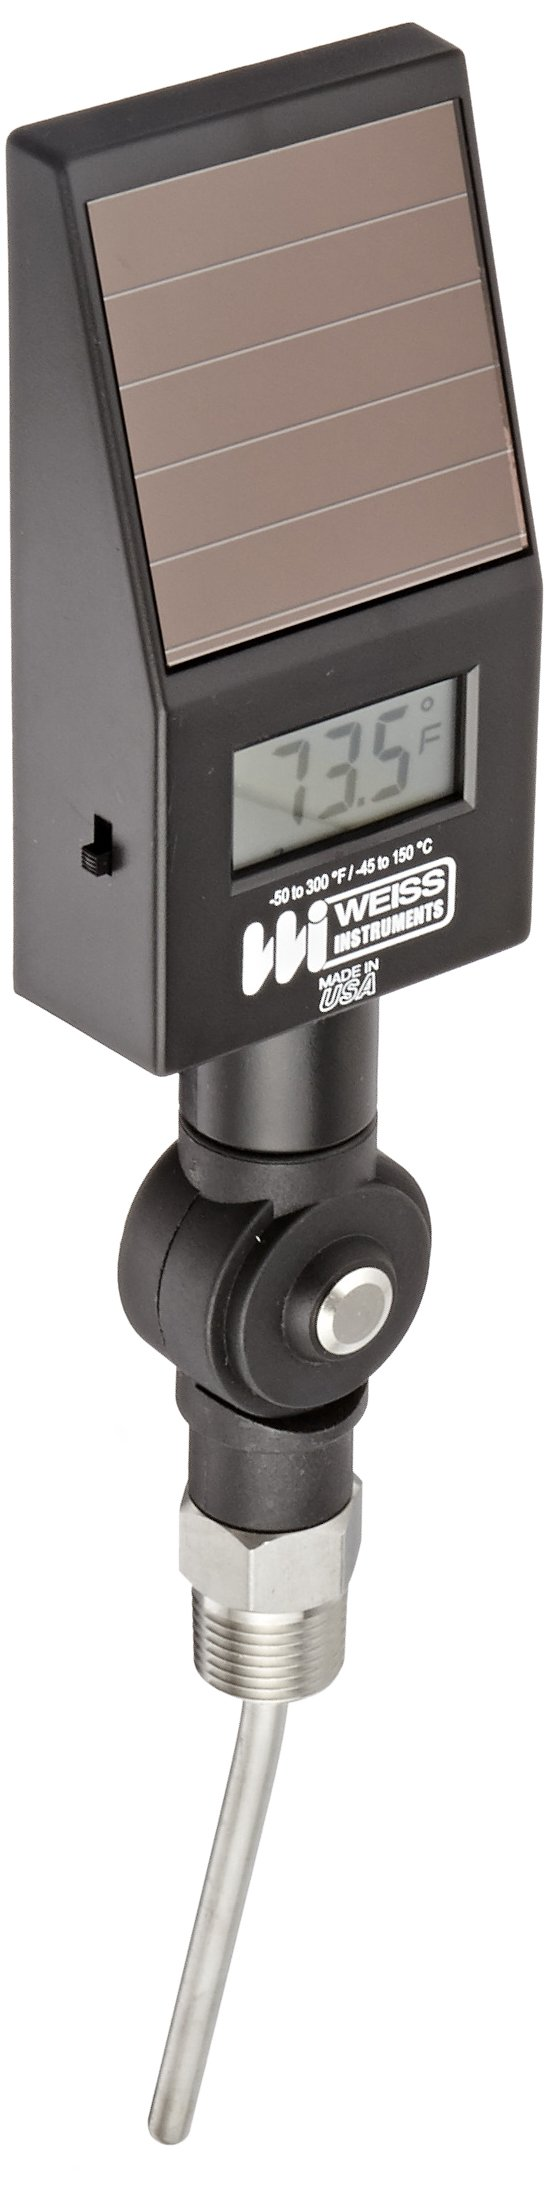 Weiss Instruments DVBM Hi-Impact ABS Digital Vari-Angle Thermometer, LCD Display, -50 to 300 Degrees F Range, 1% Accuracy, 1/2'' Male NPT Connection, Angle Mount, 4'' Stem Diameter